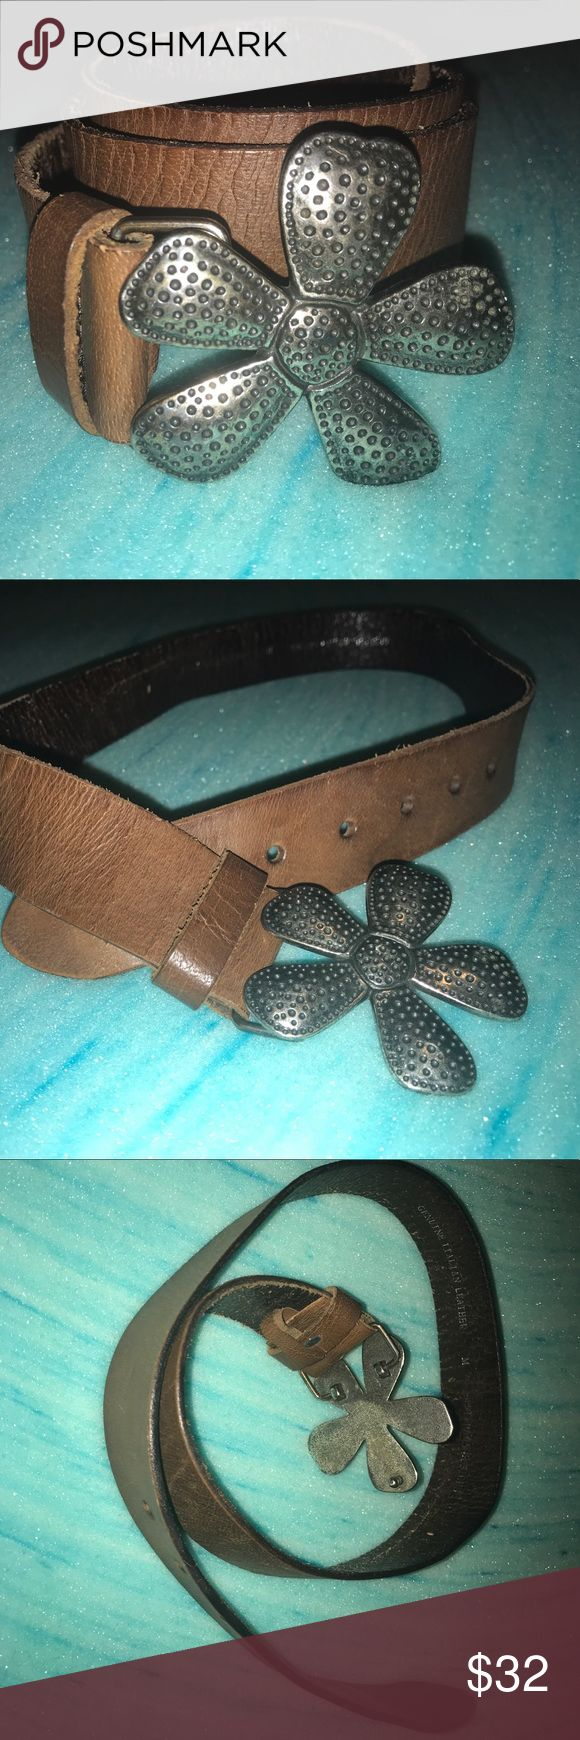 Silpada Designs Genuine Leather Daisy Buckle Belt Size Medium, Perfect Used Condition. Belt is 100% Leather and doesn't show any sign of wear. thanks for looking. Silpada Accessories Belts